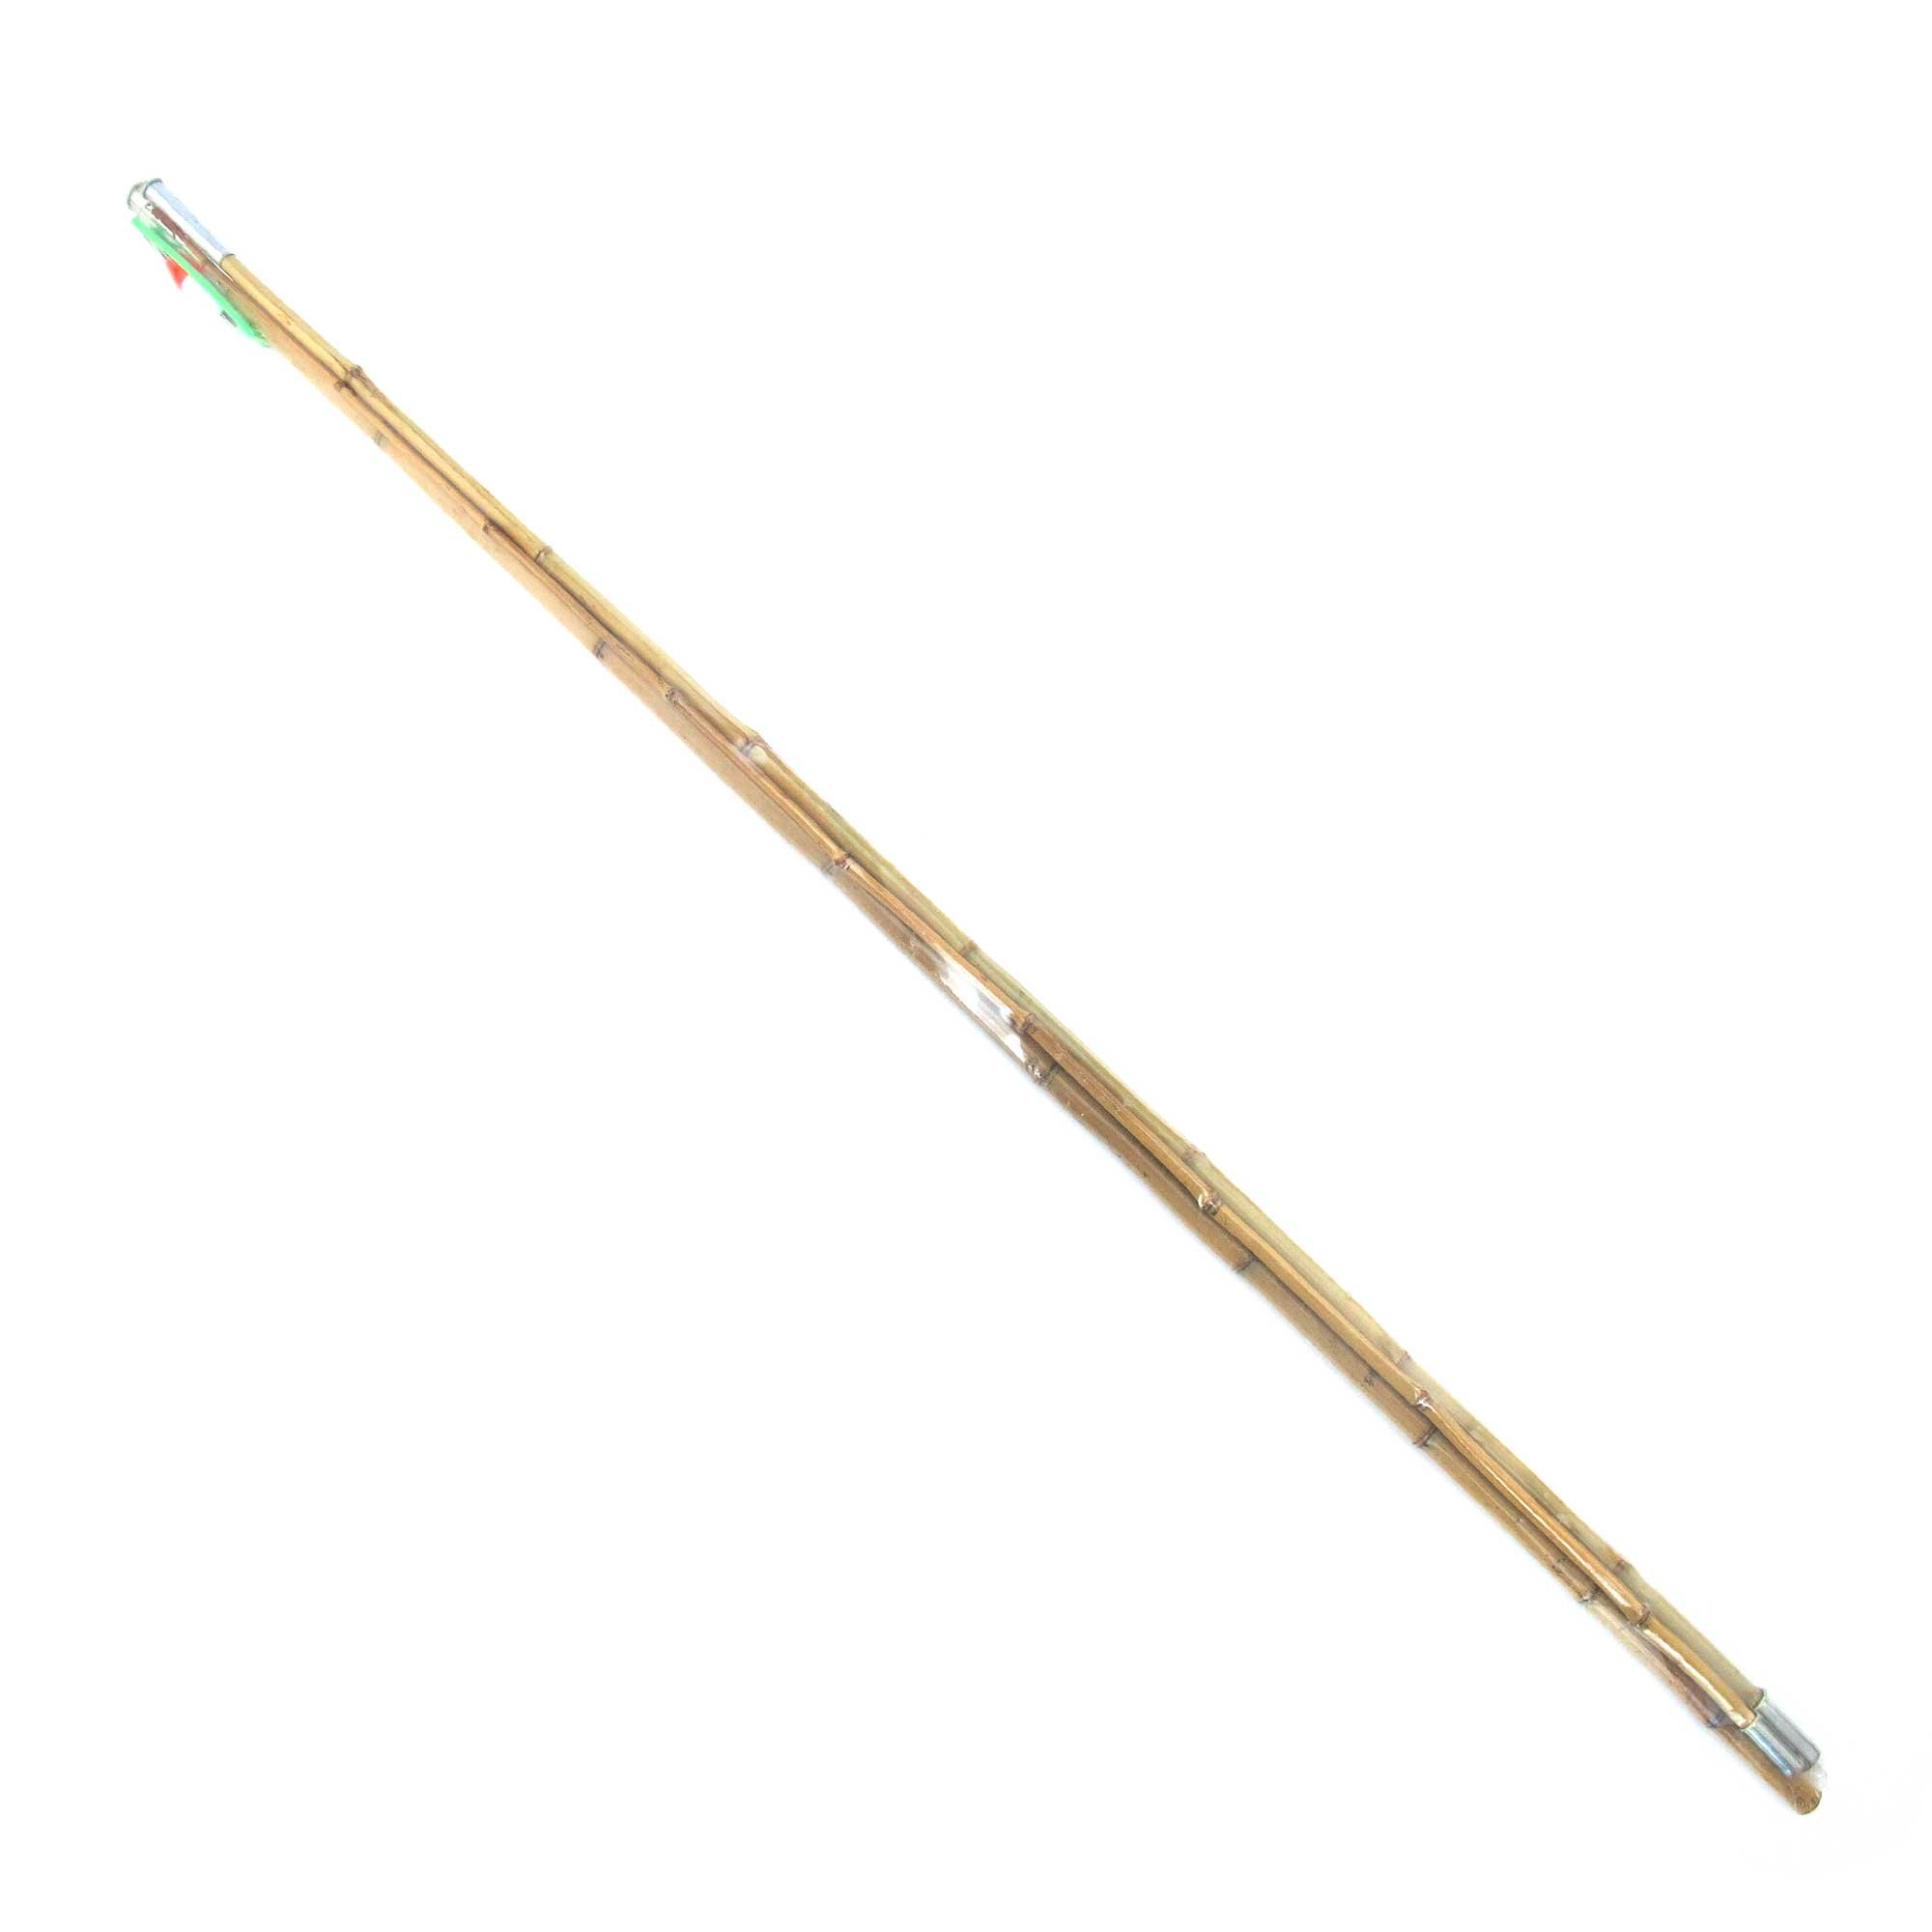 BambooMN 11.5 Ft 3 Piece Natural Bamboo Vintage Cane Fishing Pole with Bobber, Hook, Line and Sinker, 1 Set by BambooMN (Image #1)